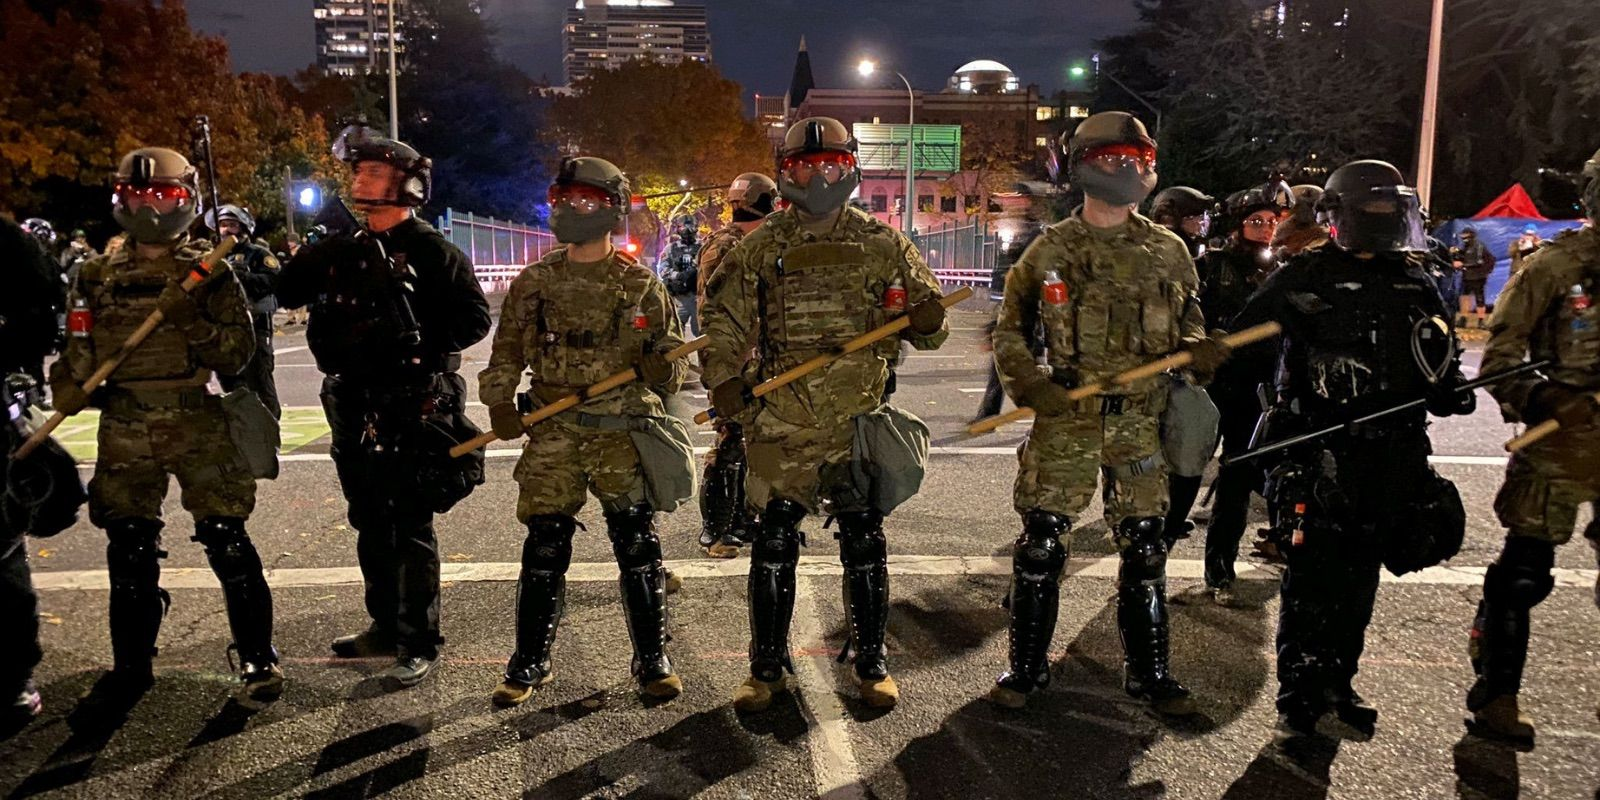 Oregon State Police to utilize National Guard at state Capitol